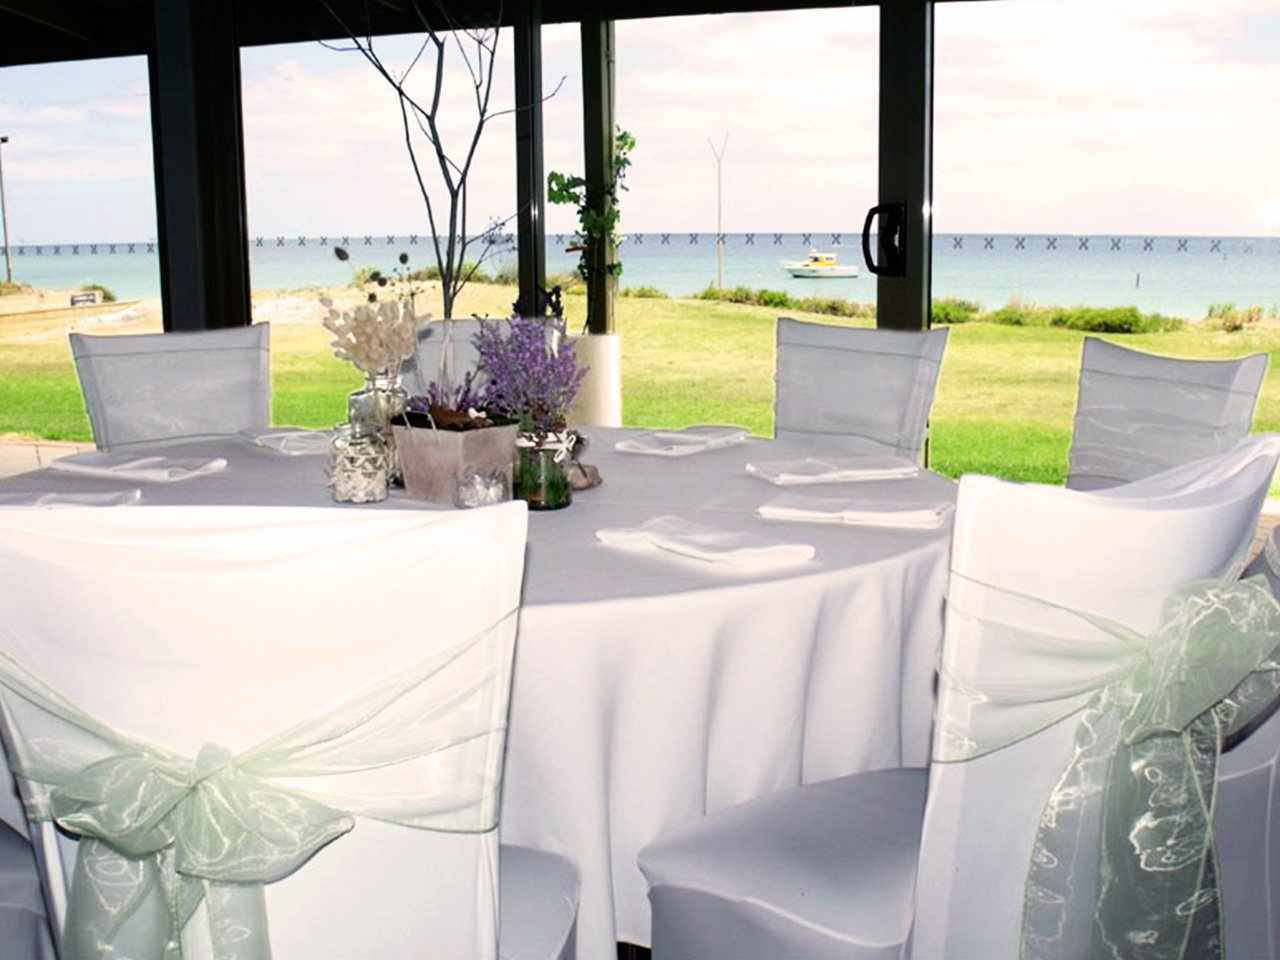 Chairs And Table Setup In Banquet Style Inside The Function Room With Glass Walls And Ocean View